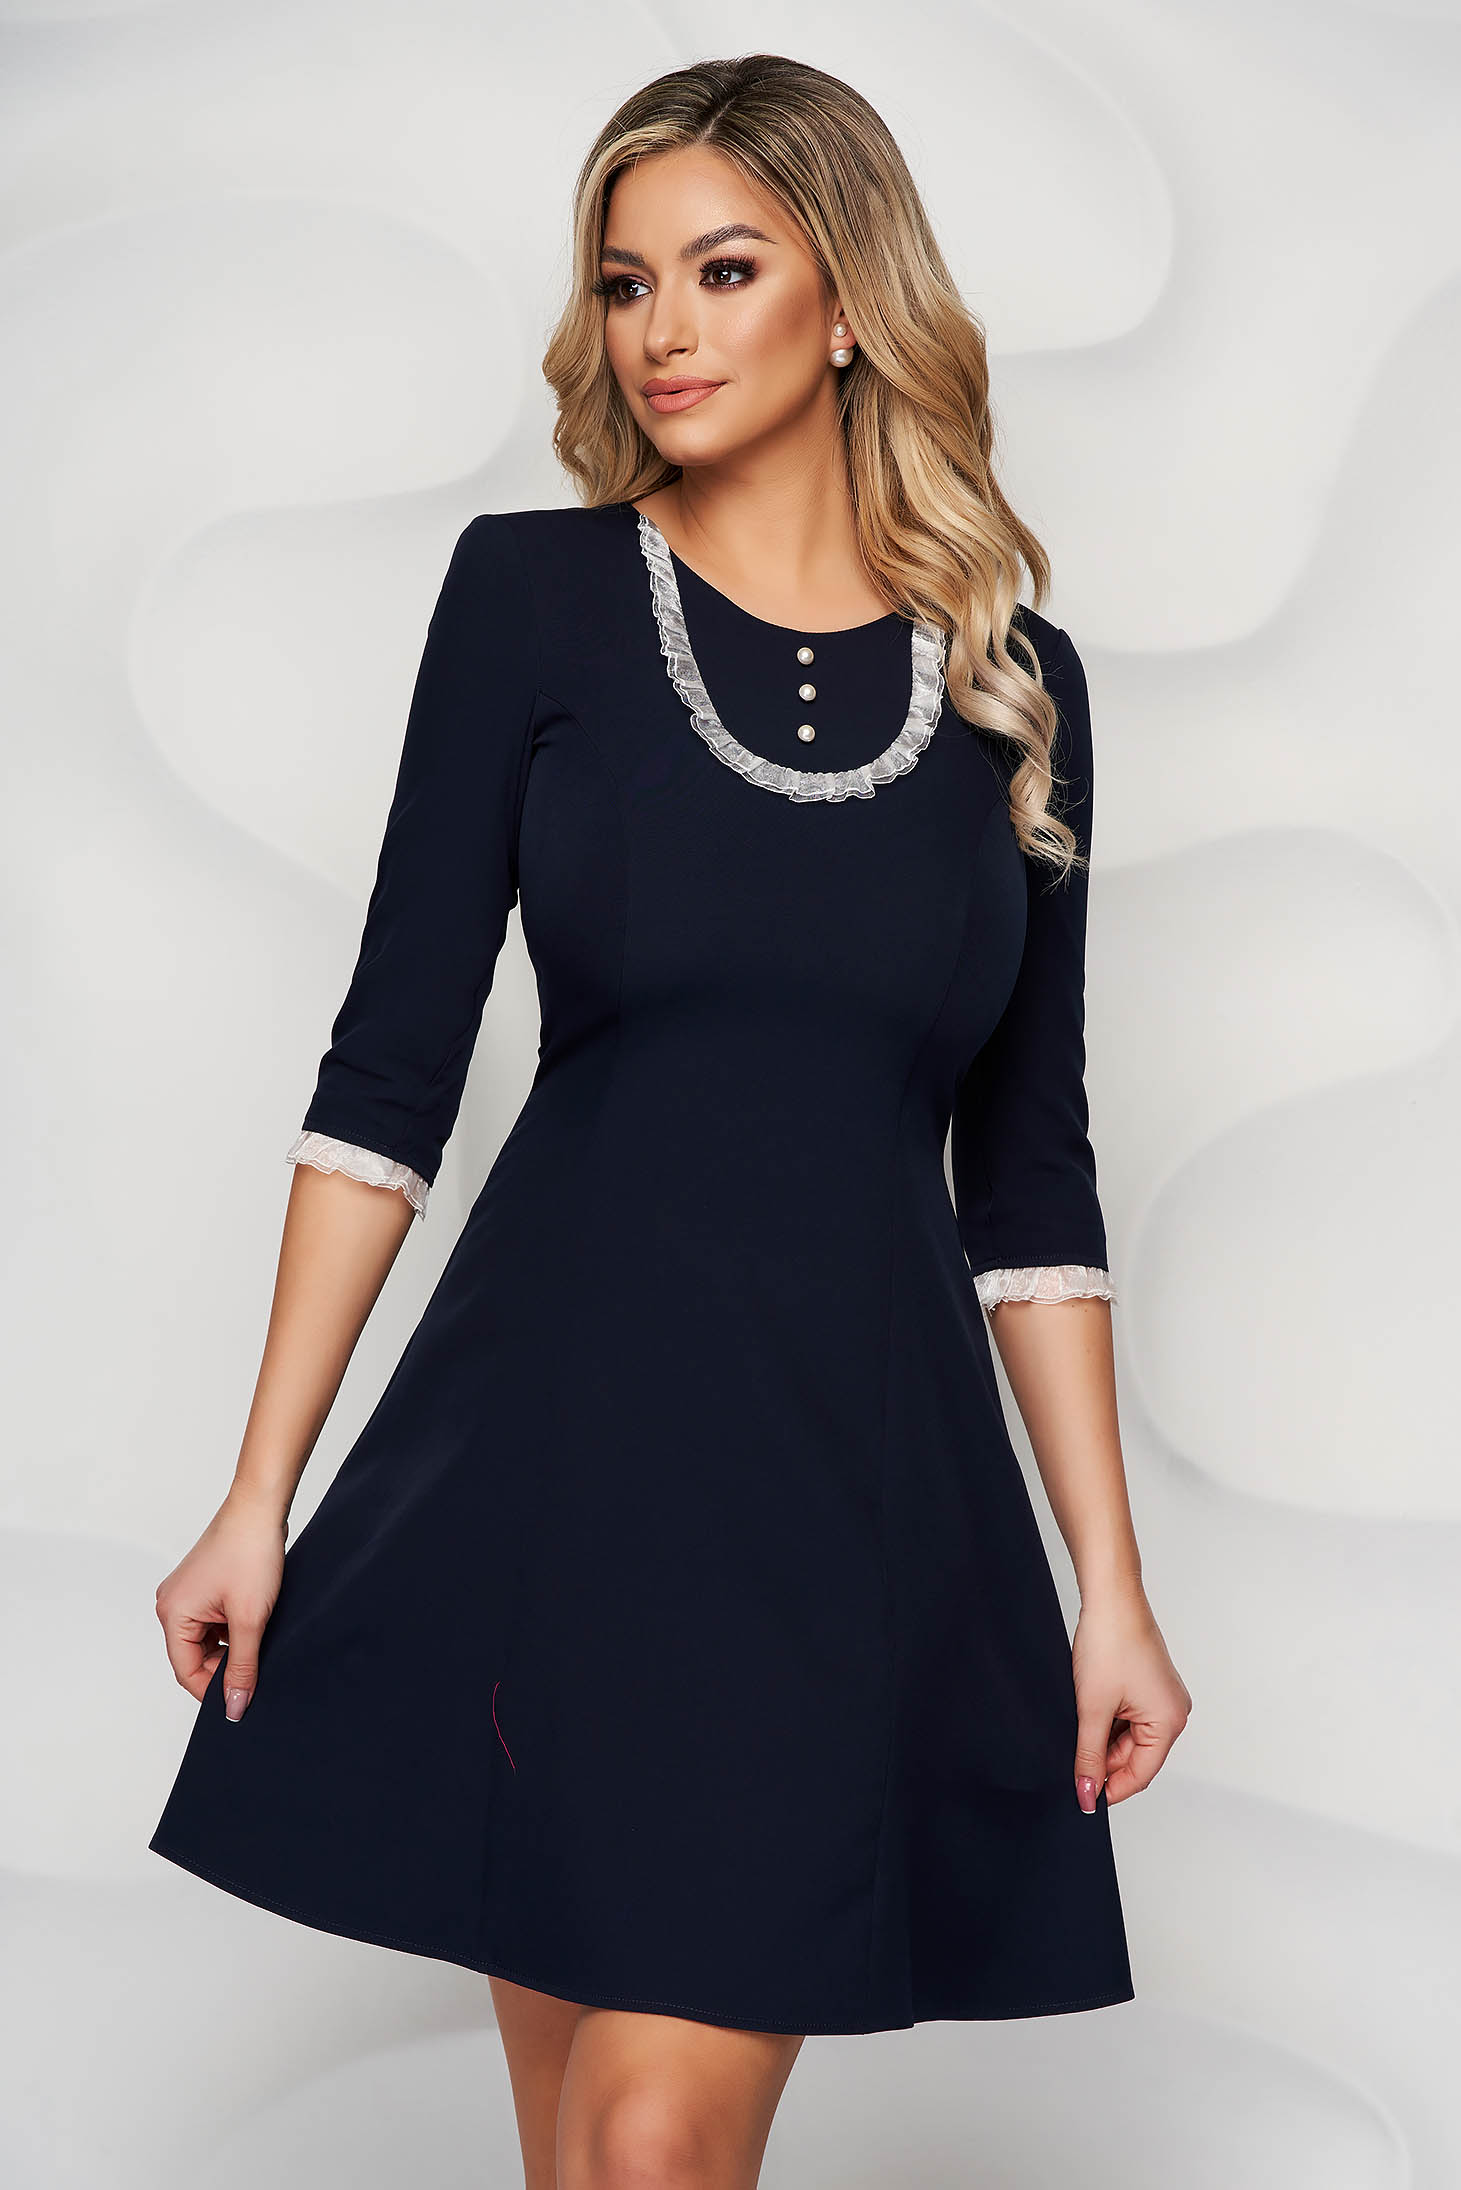 Dress StarShinerS darkblue elegant short cut with lace details cloth